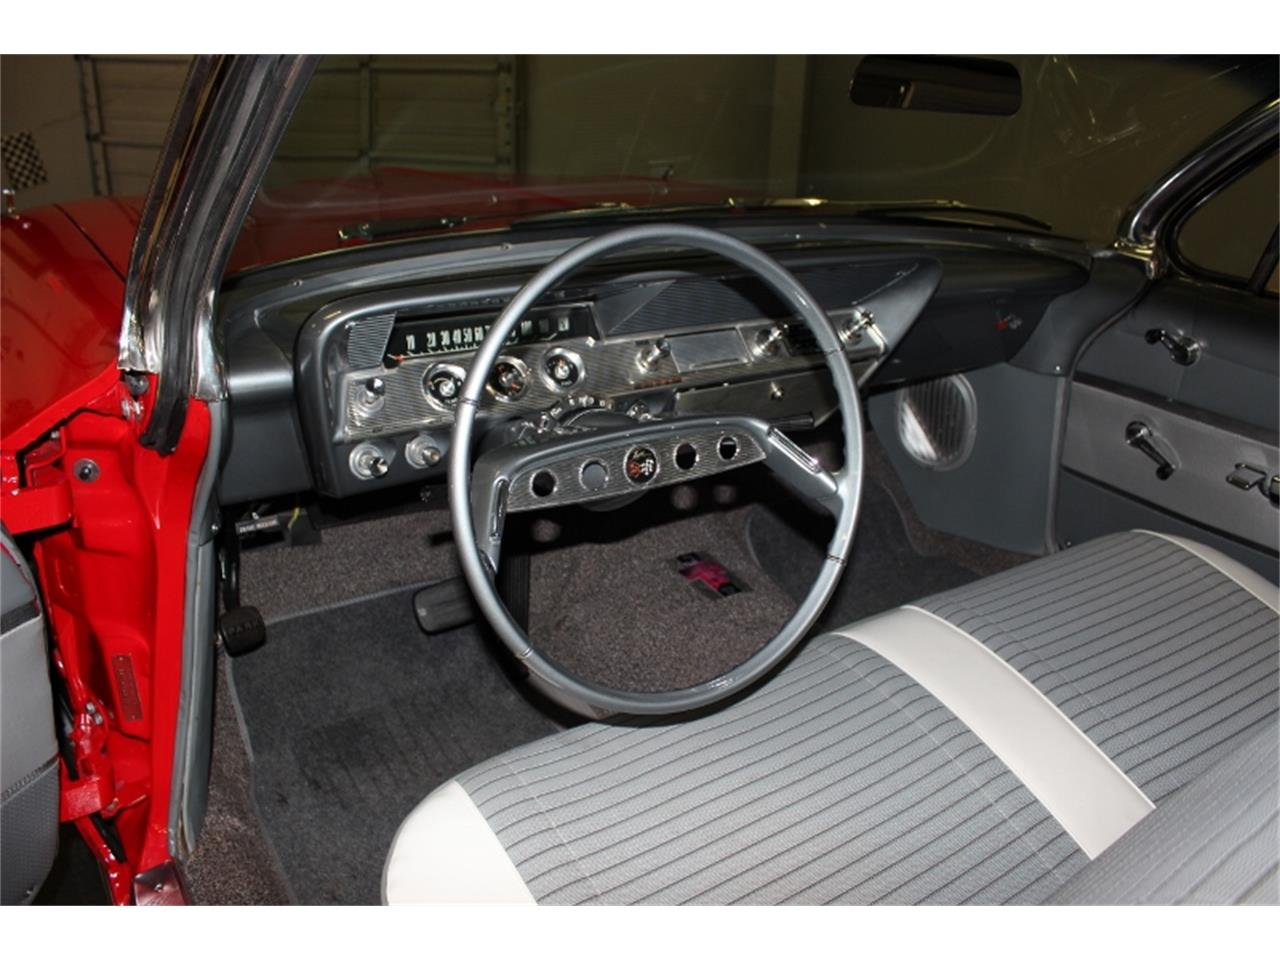 Large Picture of Classic '61 Chevrolet Impala - $58,000.00 - J60W